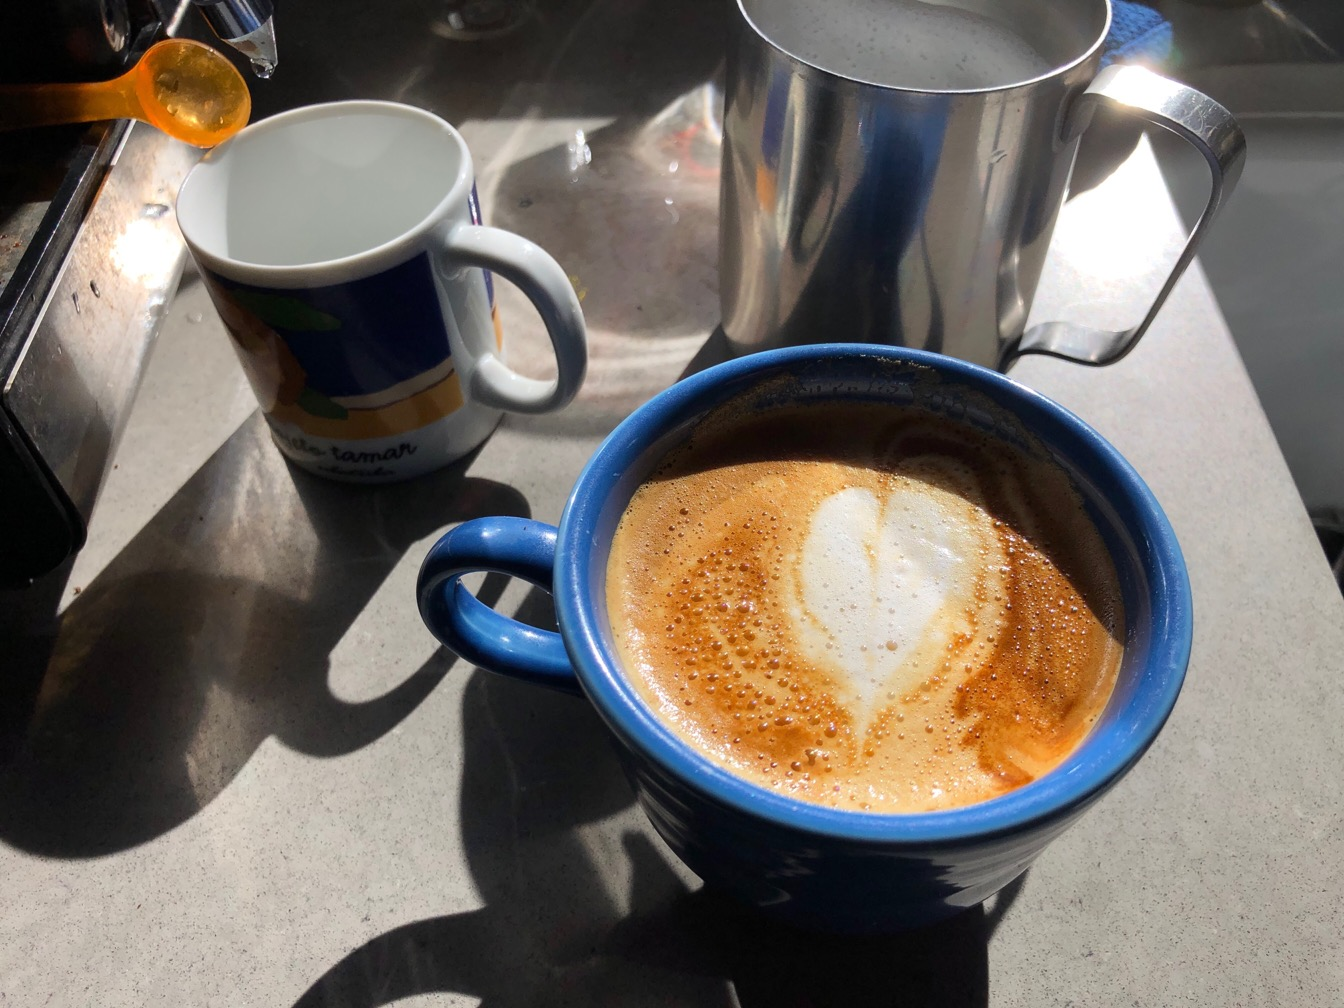 Photo of a cappuccino in a blue cup.